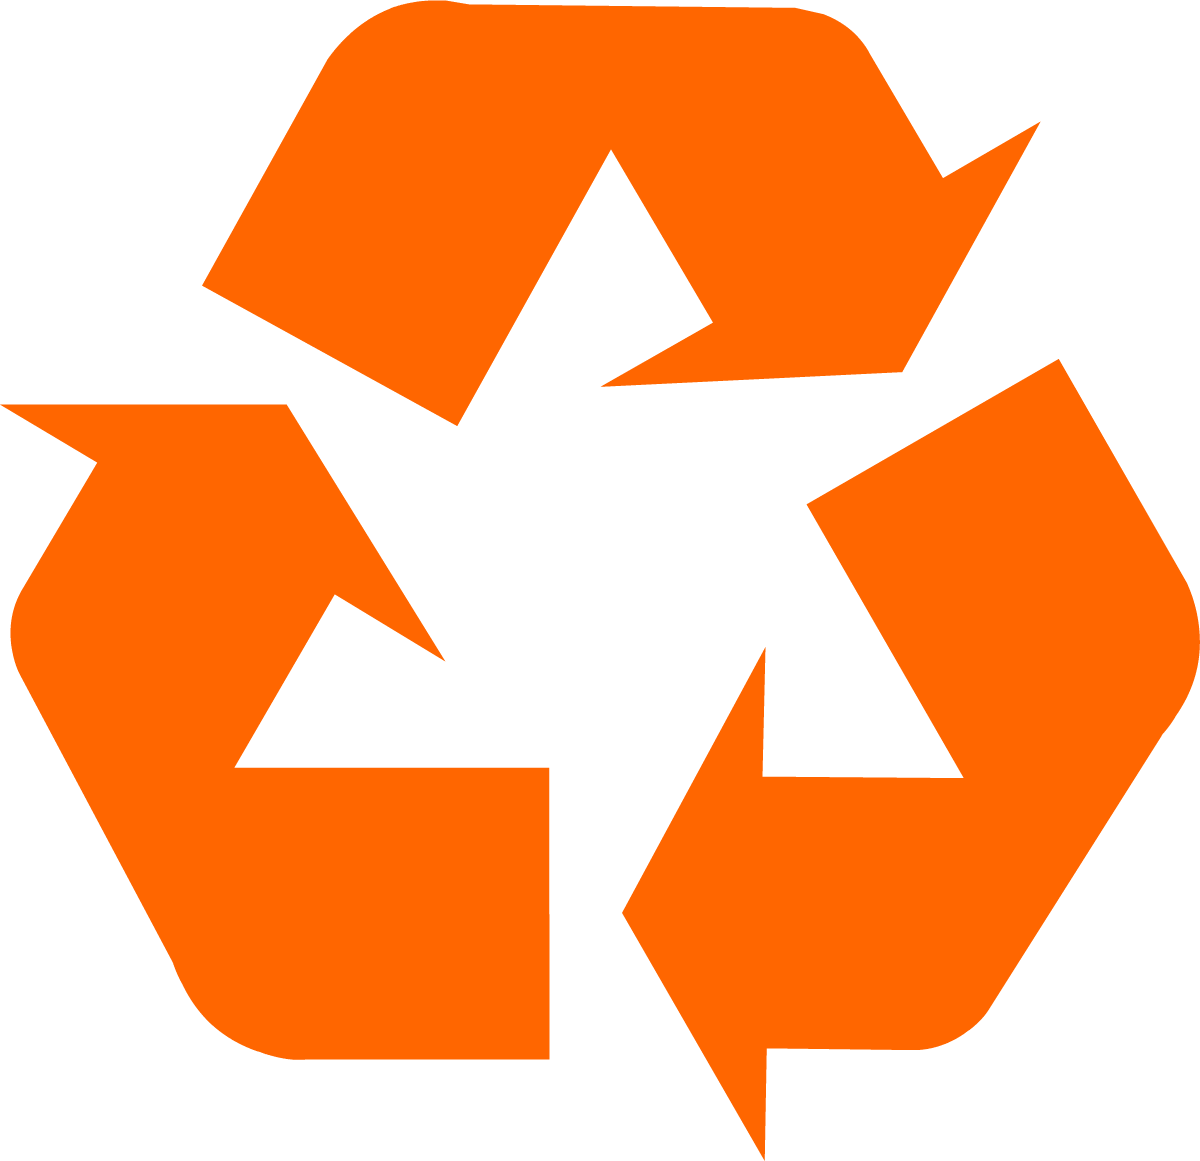 1200x1161 Orange universal recycling symbol logo sign